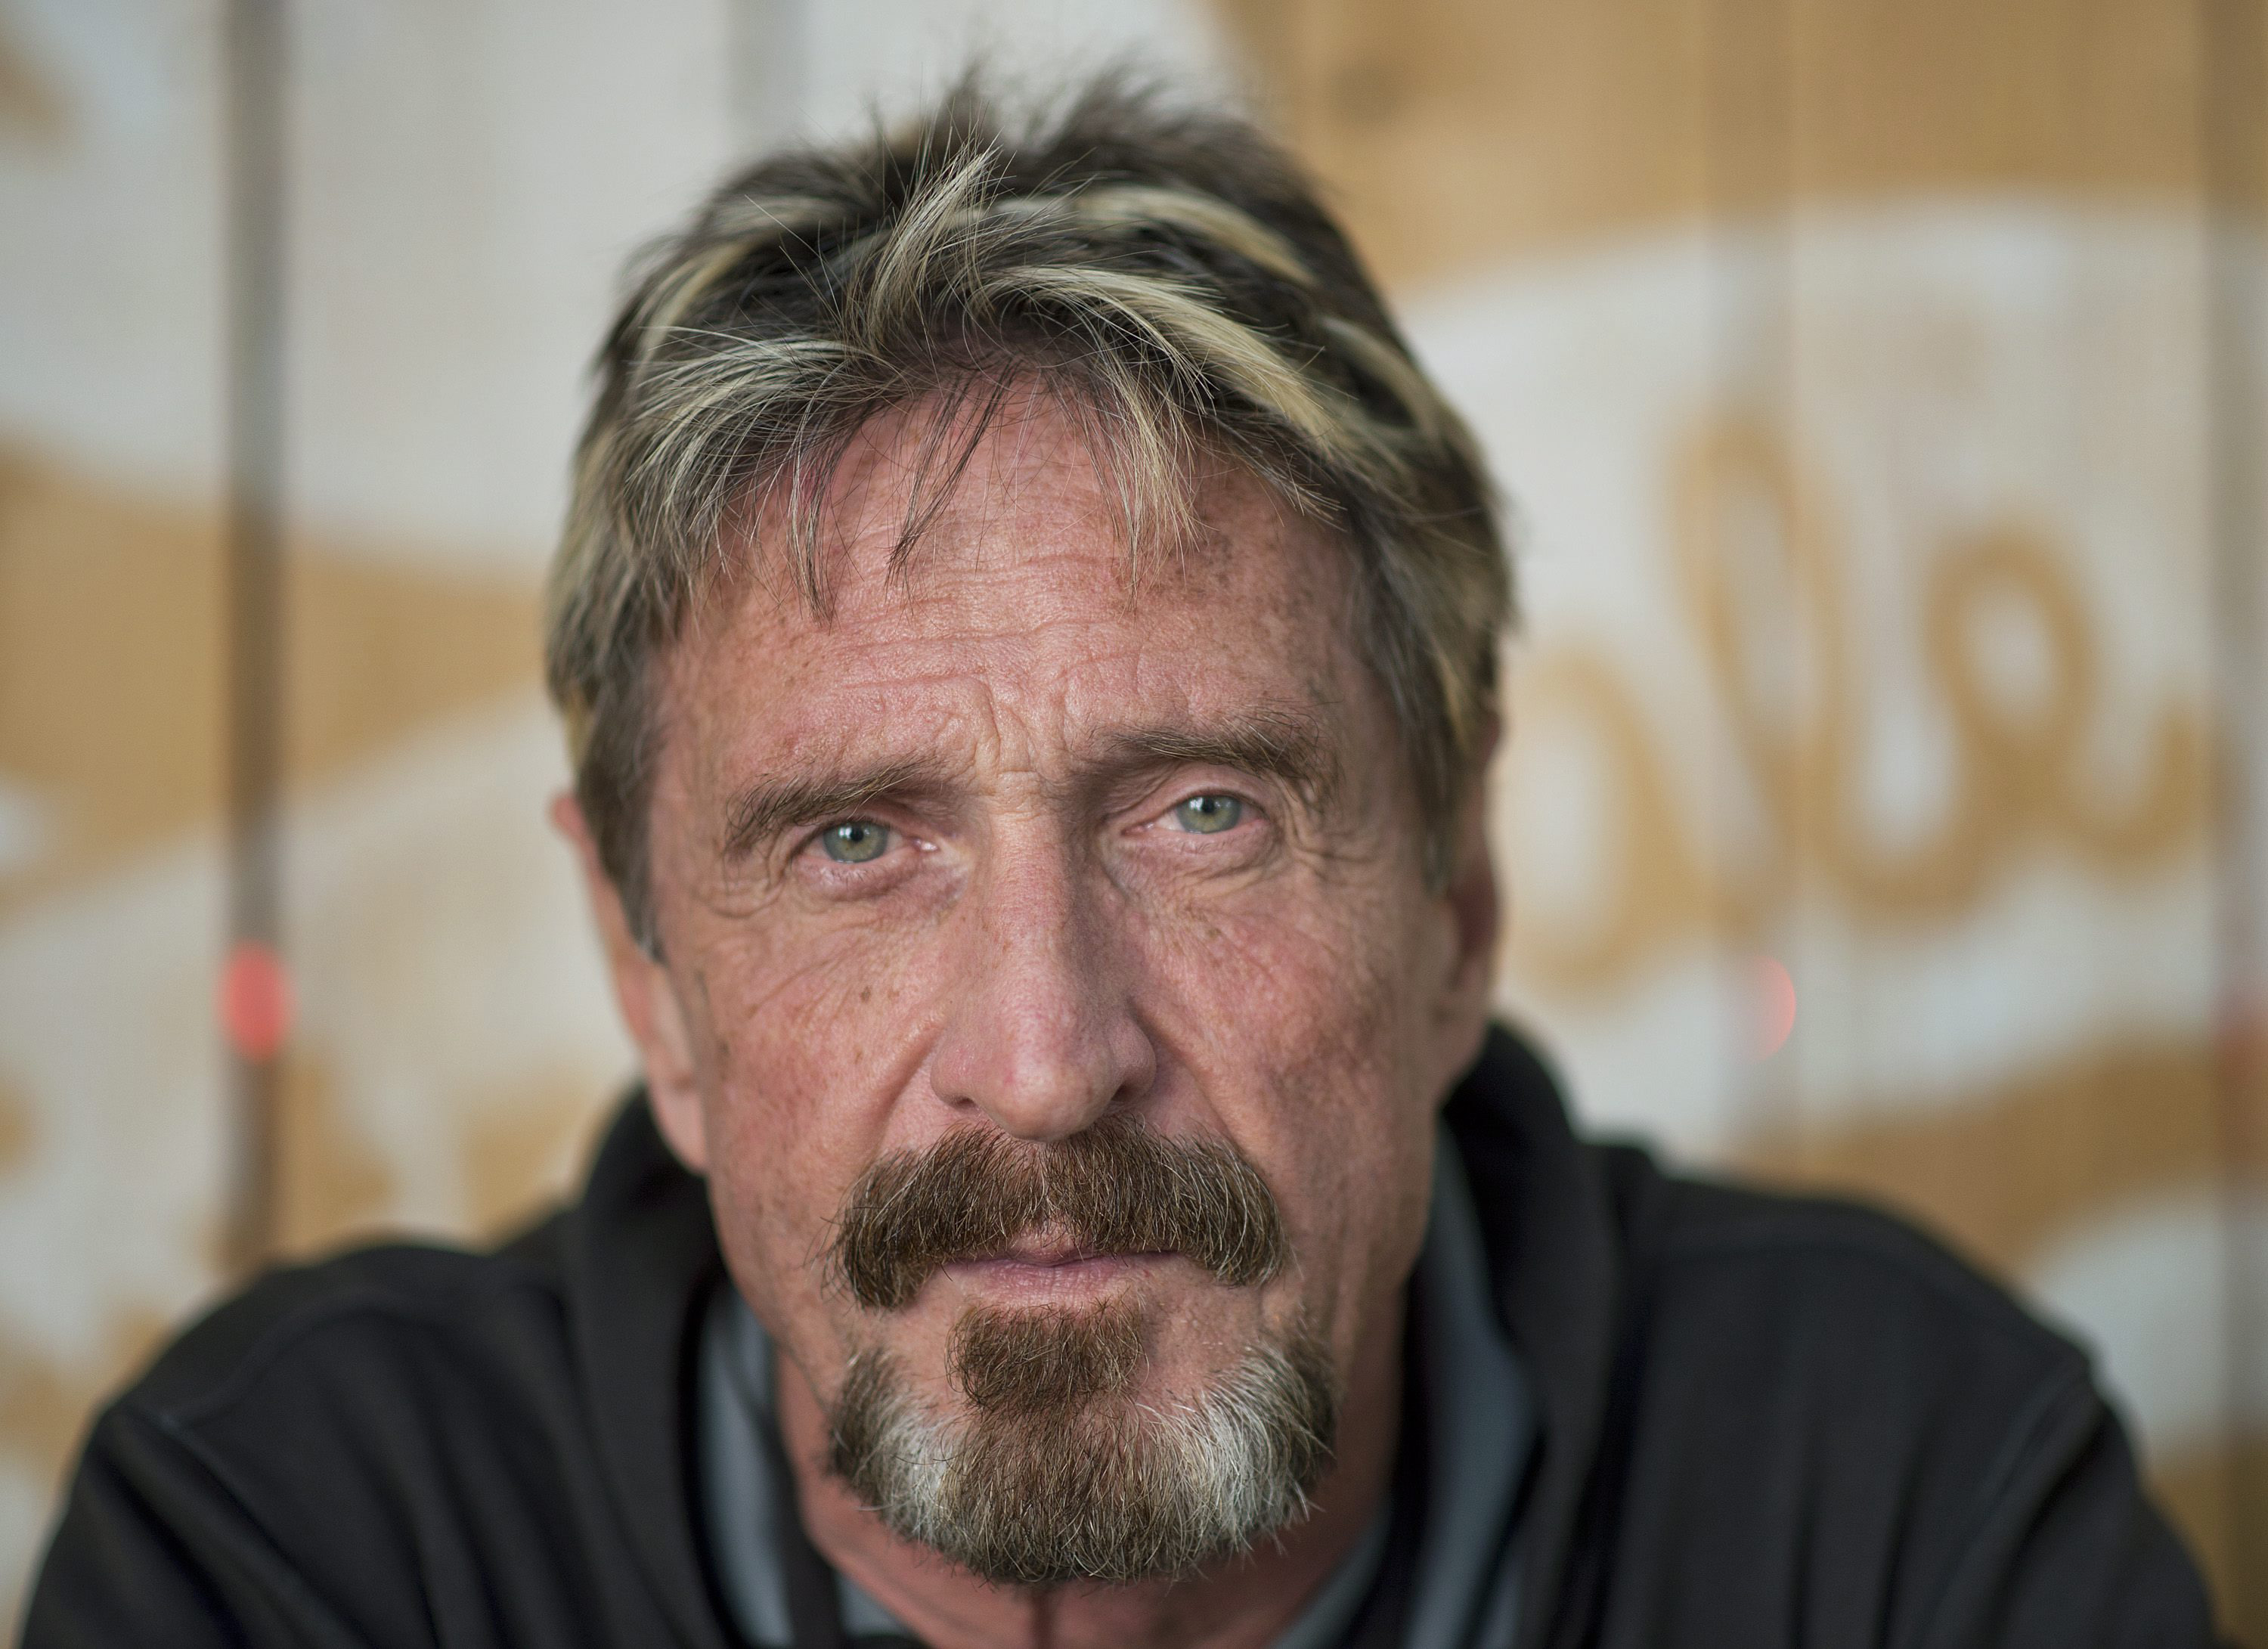 Antivirus pioneer John McAfee poses for a photograph in Montreal on Aug. 24, 2013.